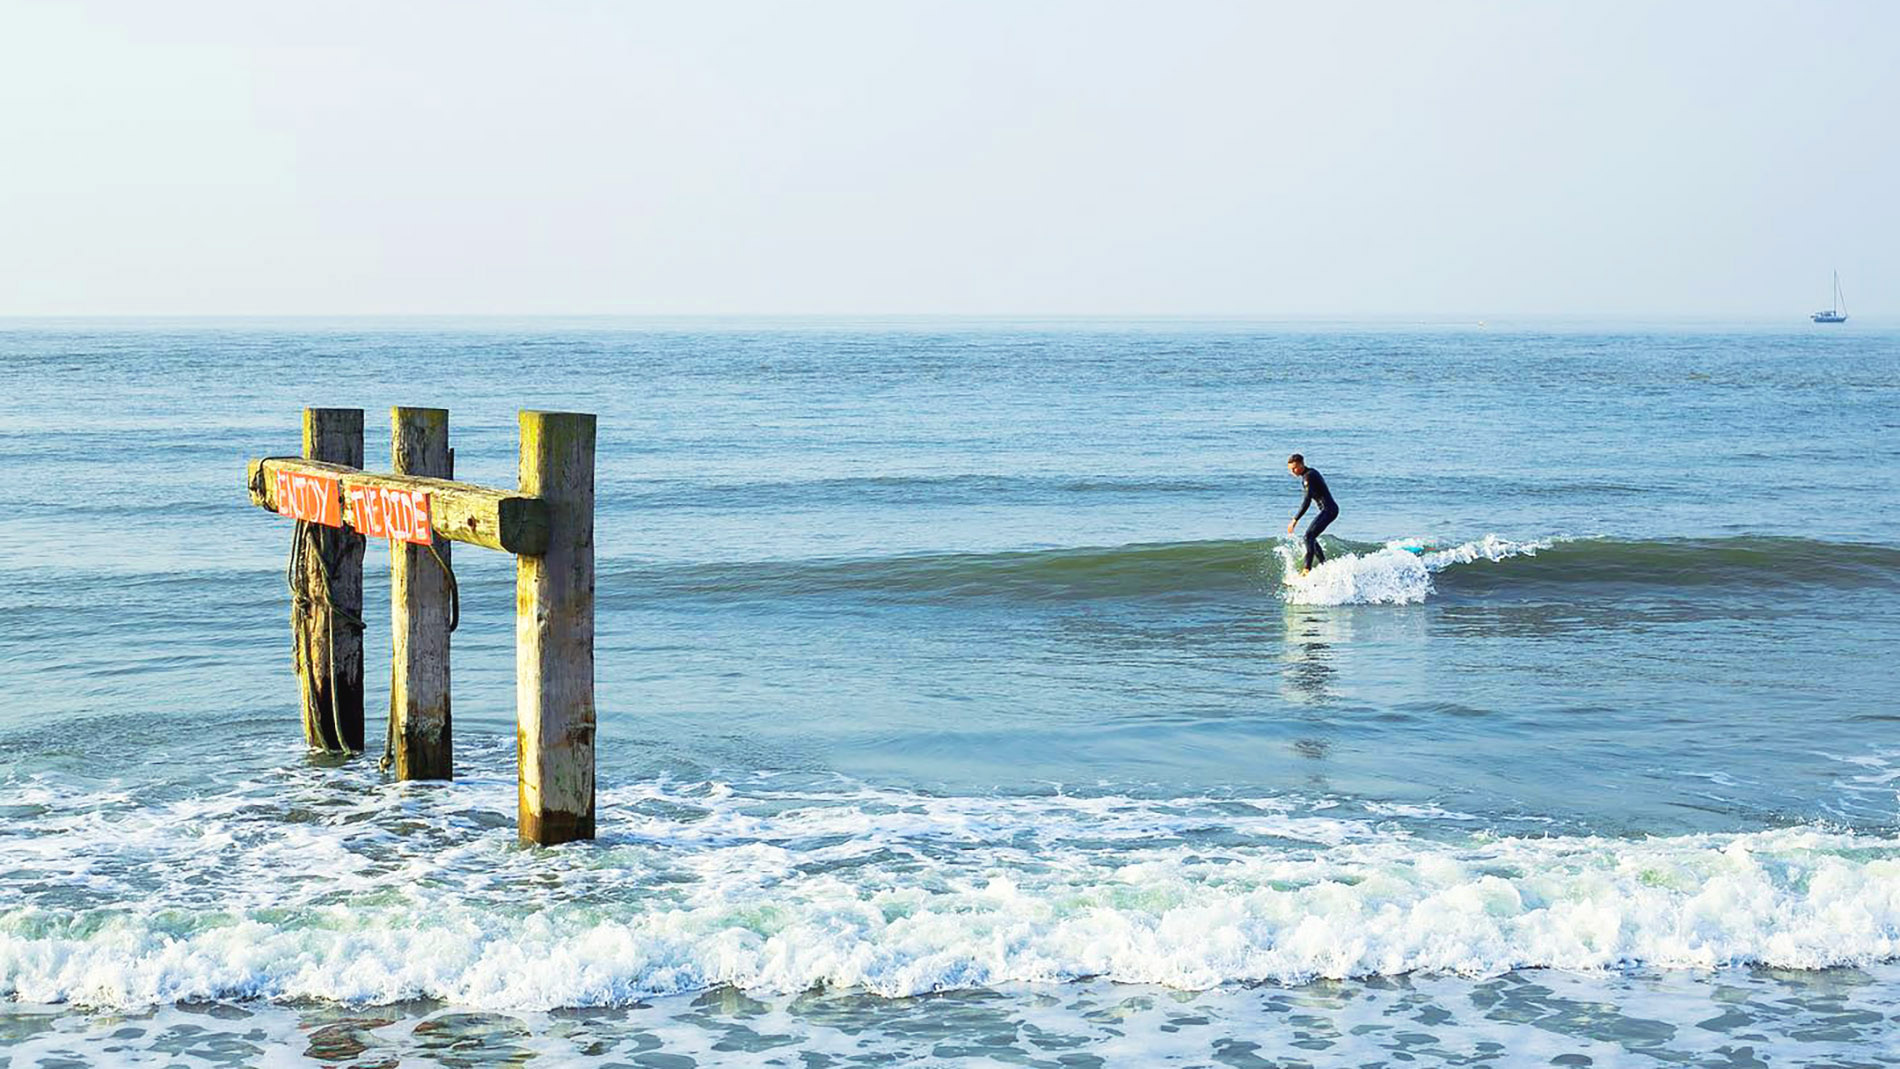 Longboarding the North Sea and hoping for a wave pool